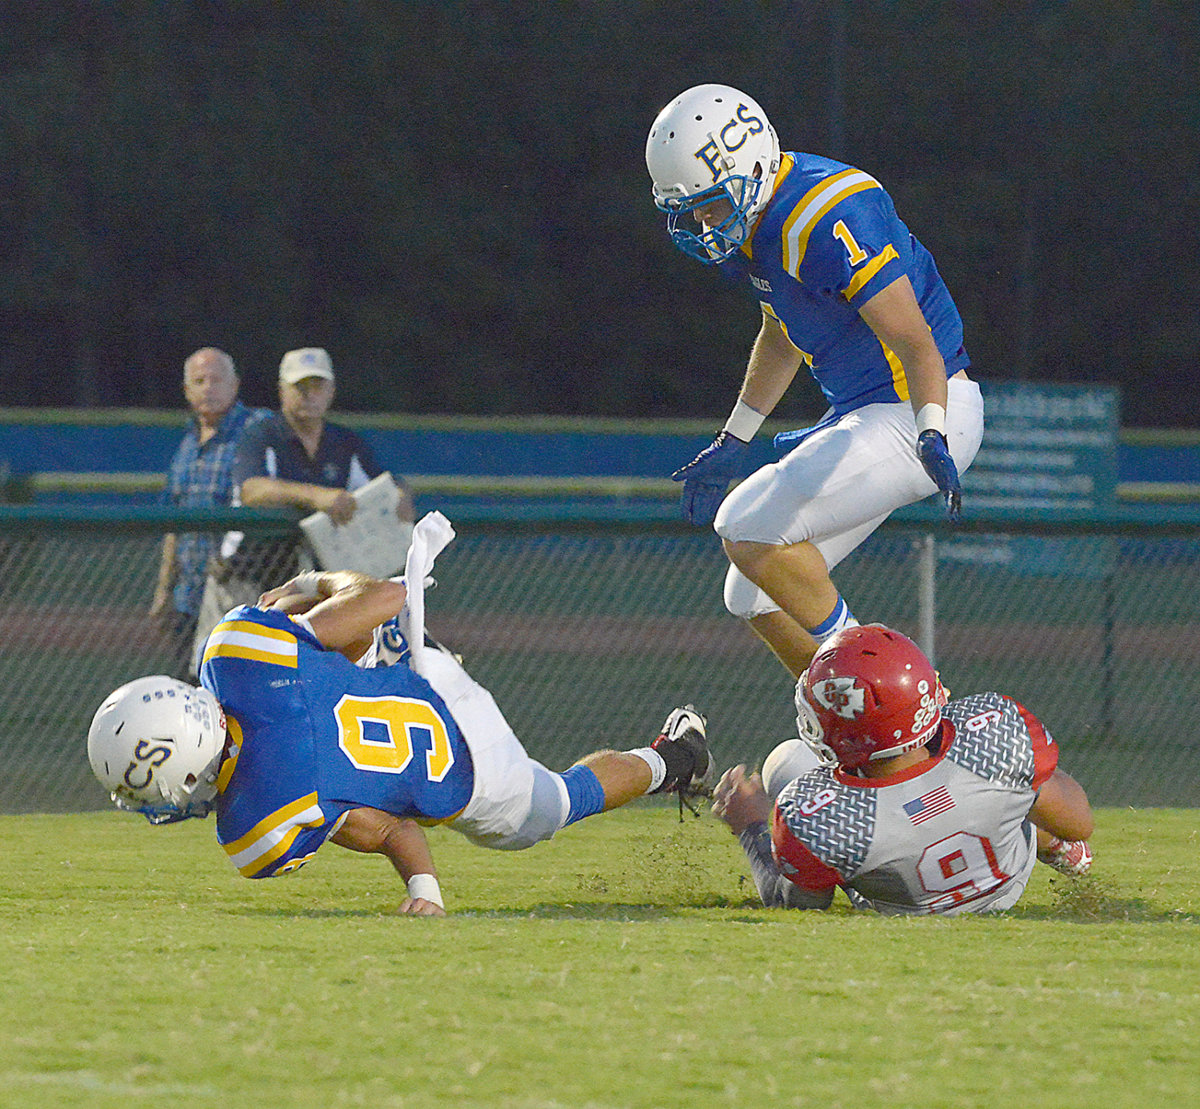 Florence Christian finds way to win despite injuries ...